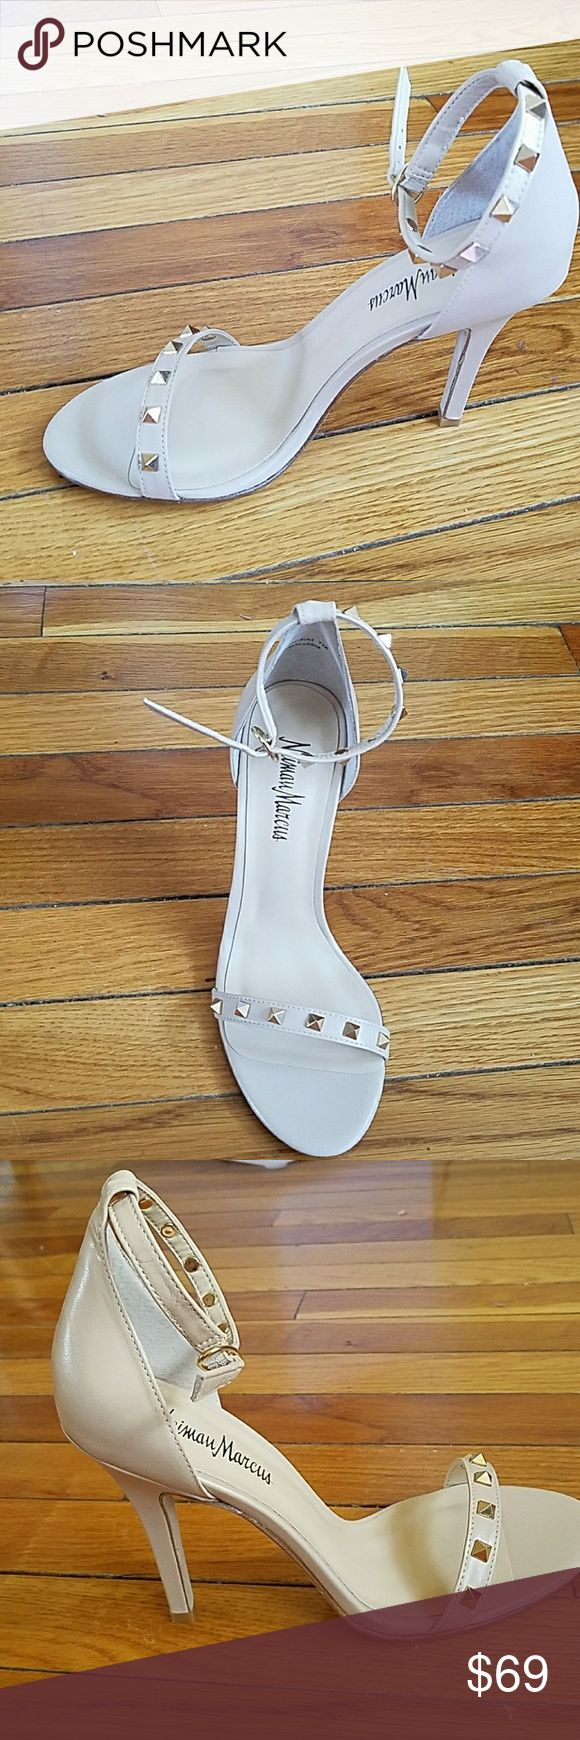 Neiman Marcus Sandals NWOT. High heels Cute sexy sandals worn once  has 2 straps and studs Neiman Marcus Shoes Sandals